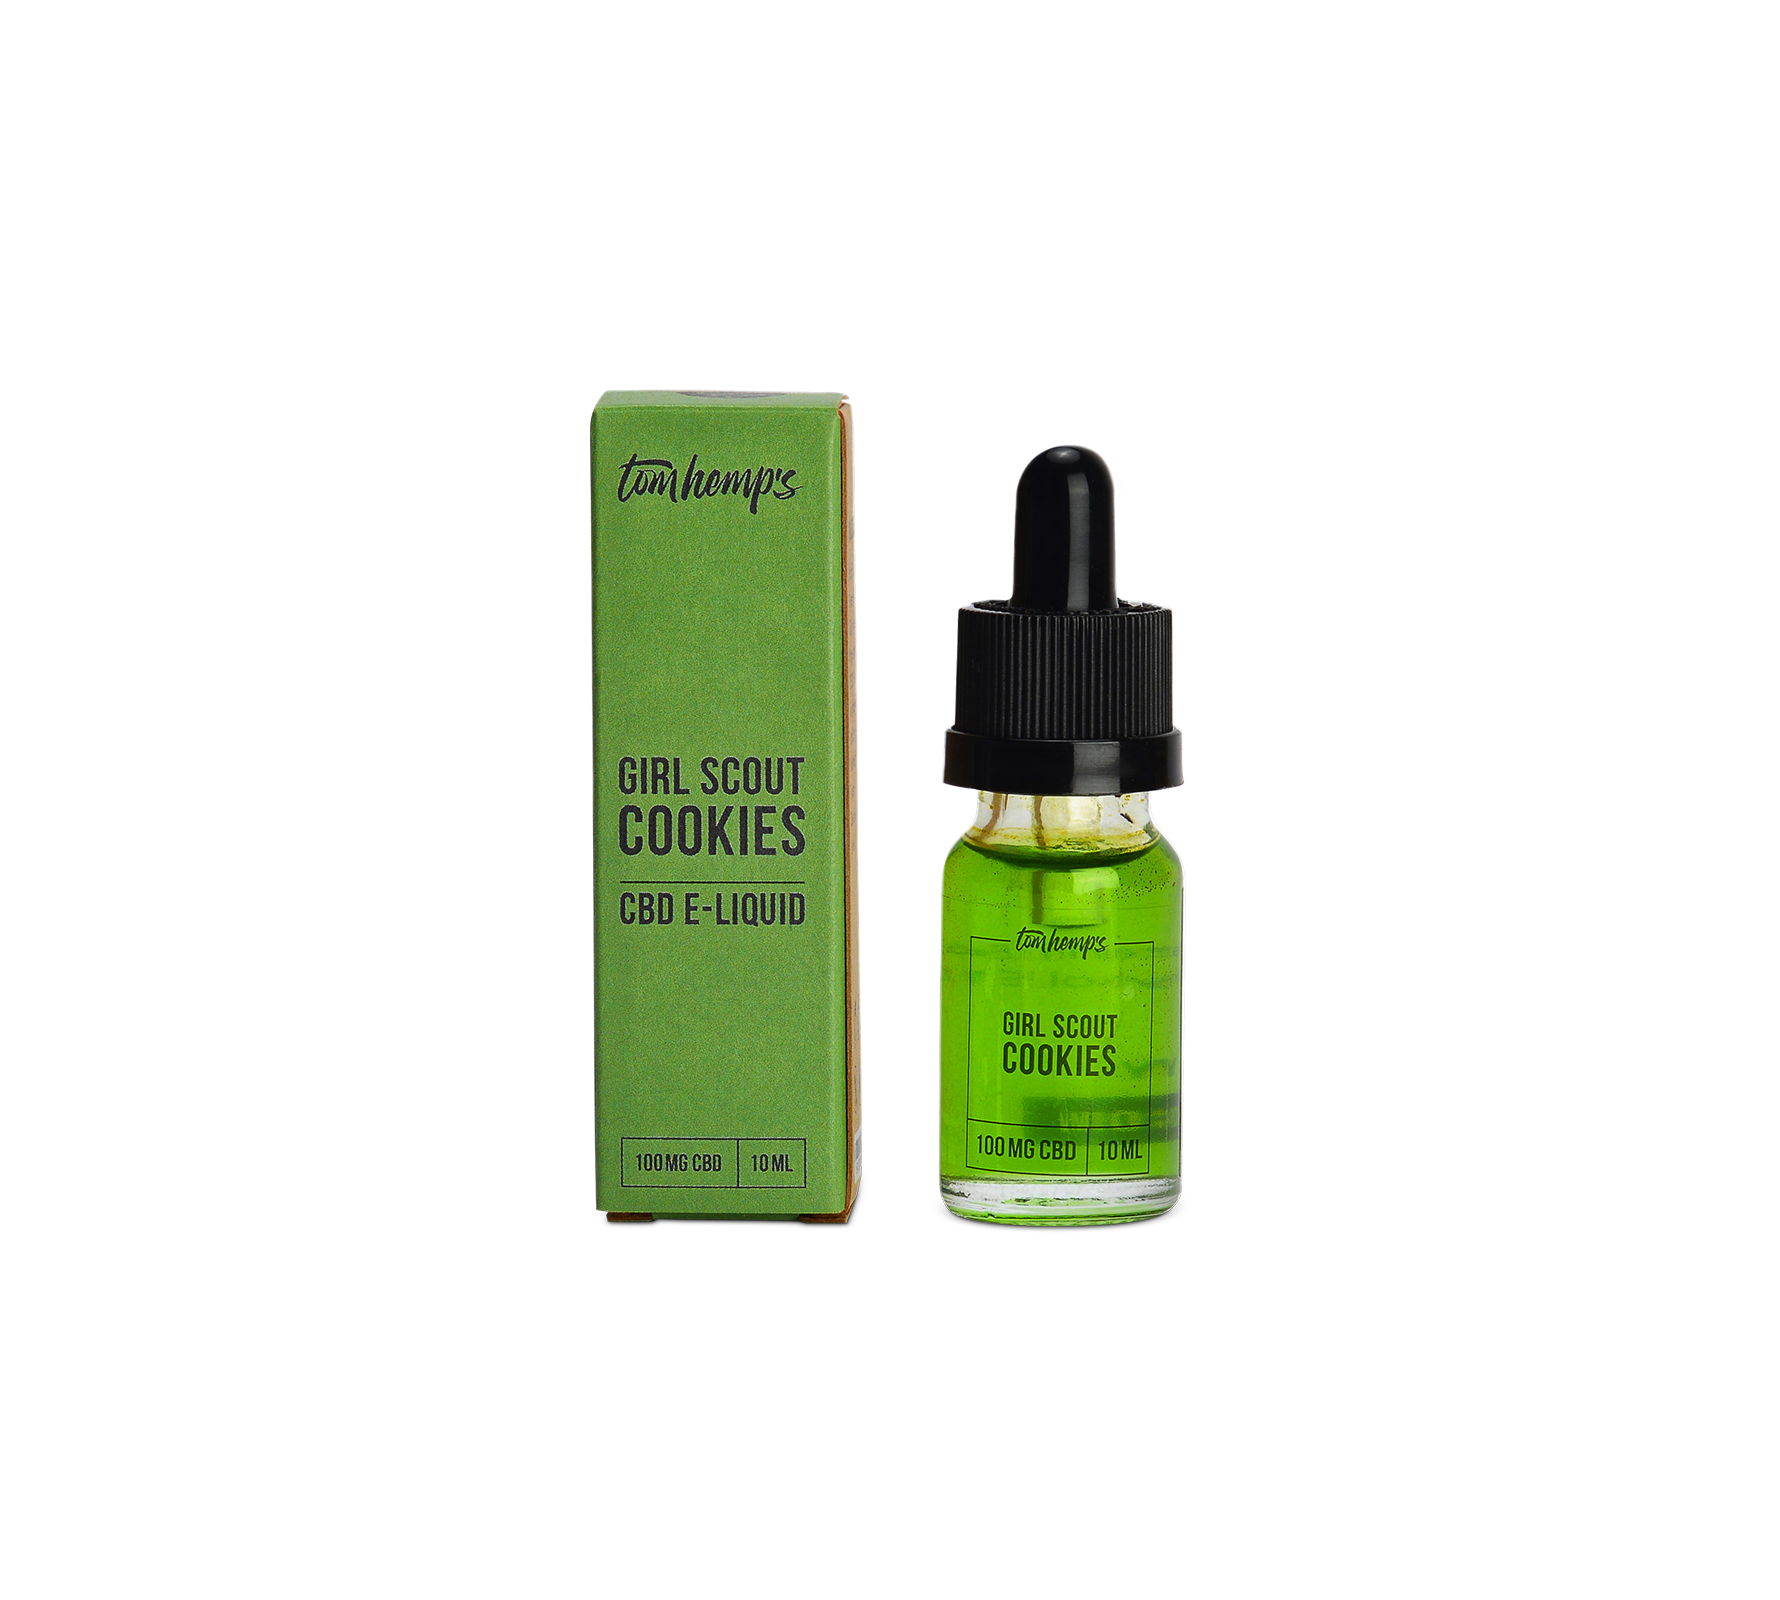 Tomhemps Cbd E Liquid Girlscoutcookies Pipette Desktop Detail Hd 1780×1600